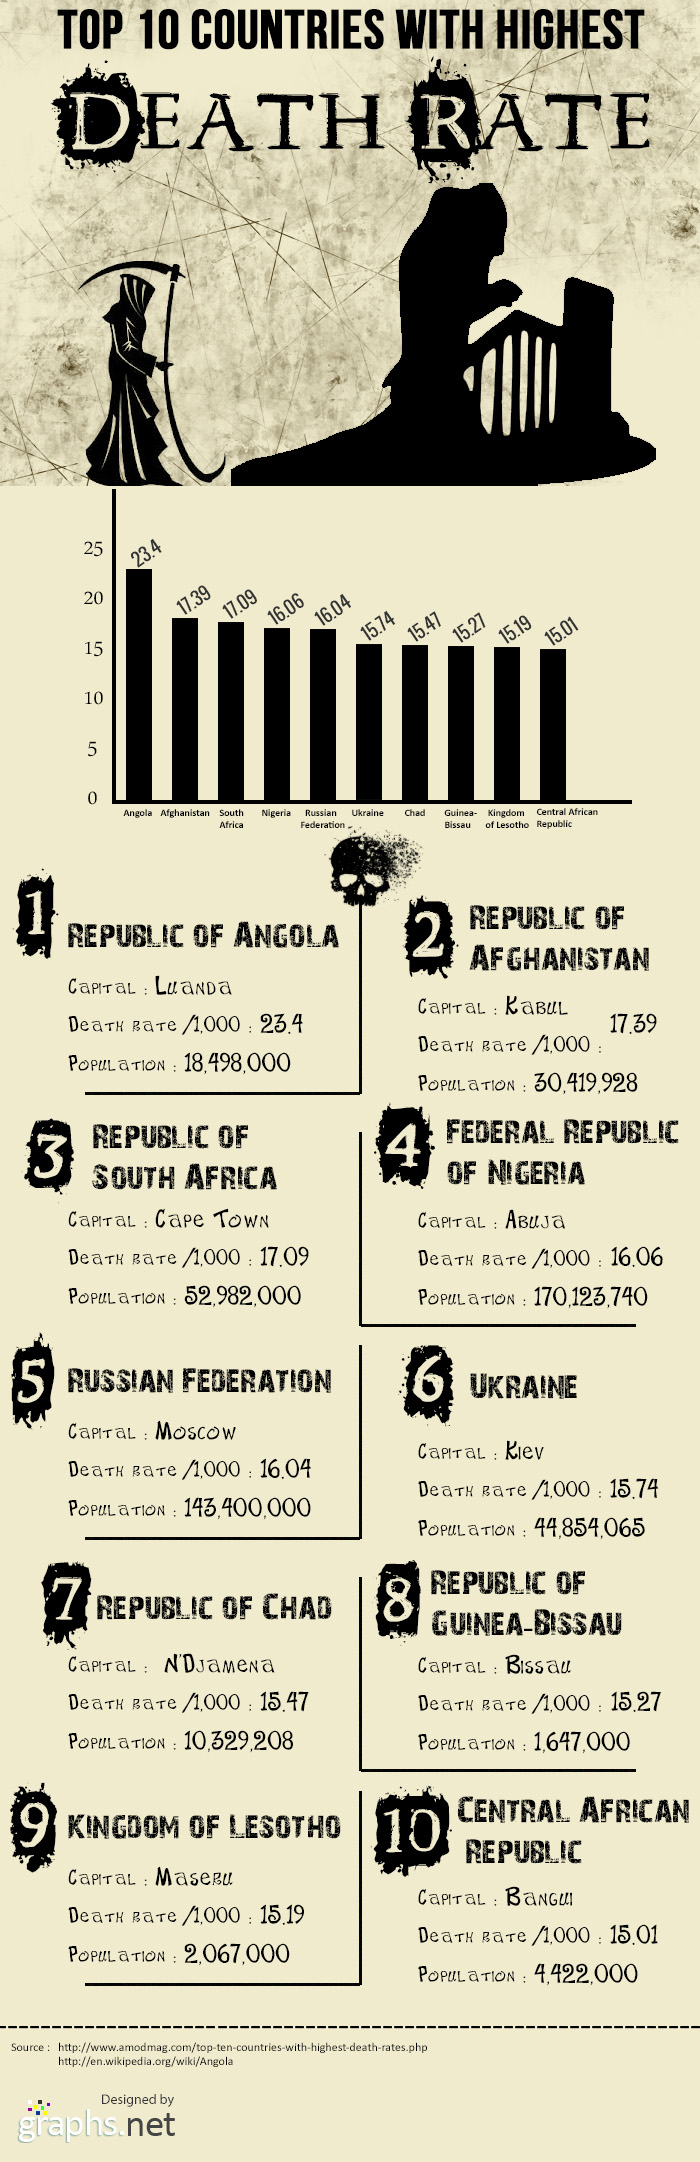 Top 10 Countries with the Highest Death Rates